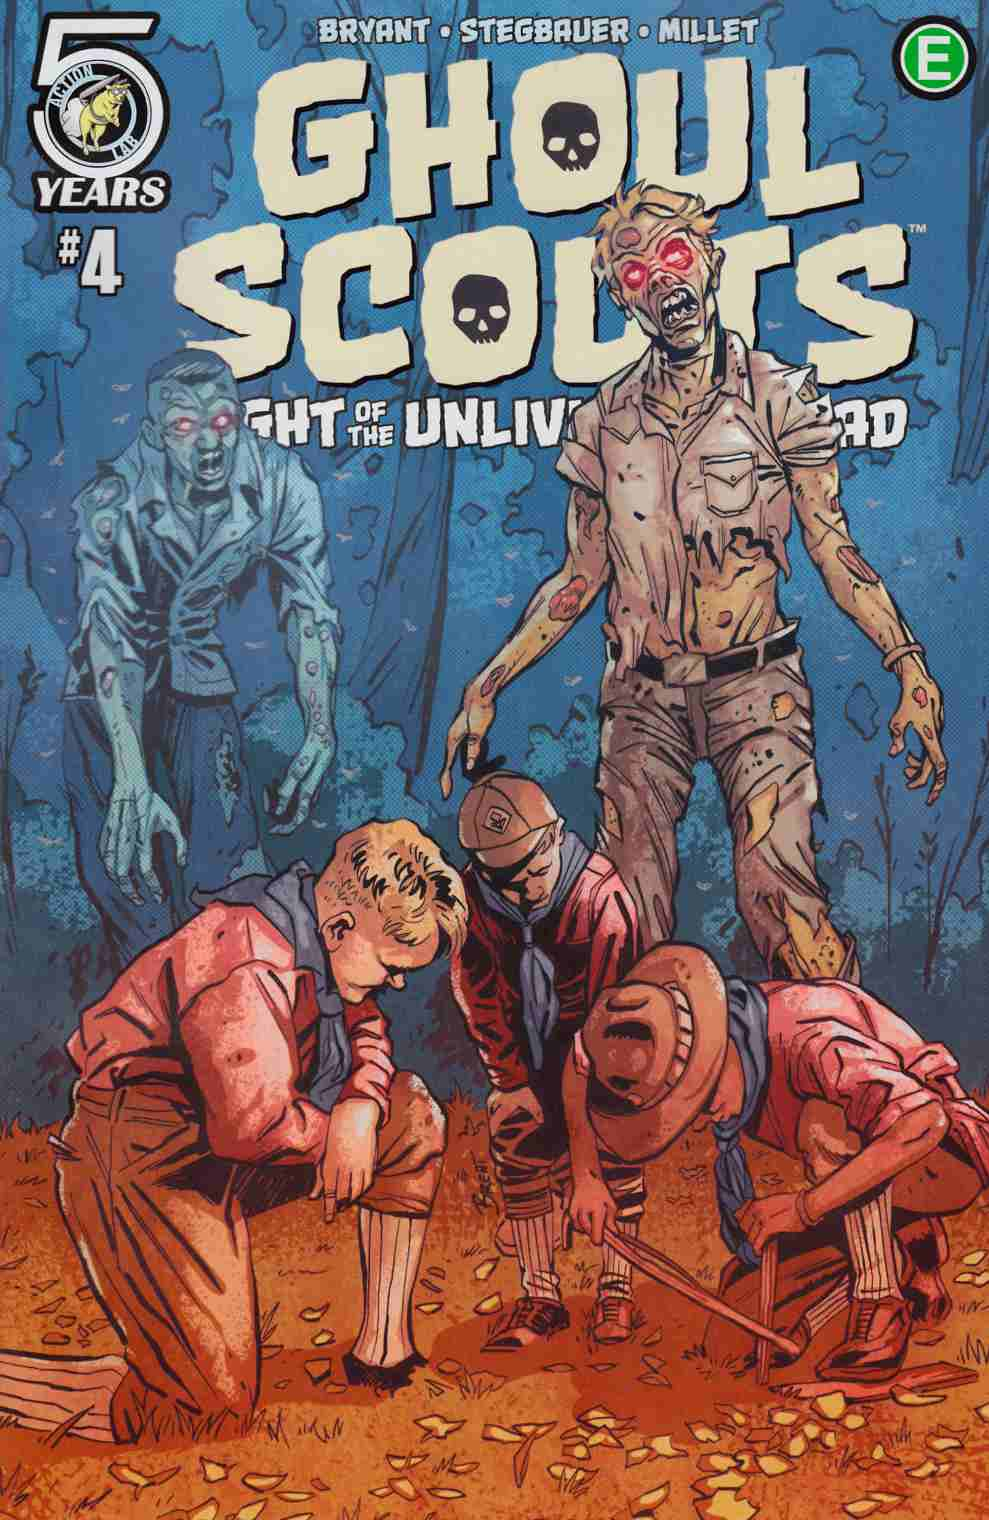 Ghoul Scouts Night of the Unliving Undead #4 Cover B [Action Lab Comic] THUMBNAIL